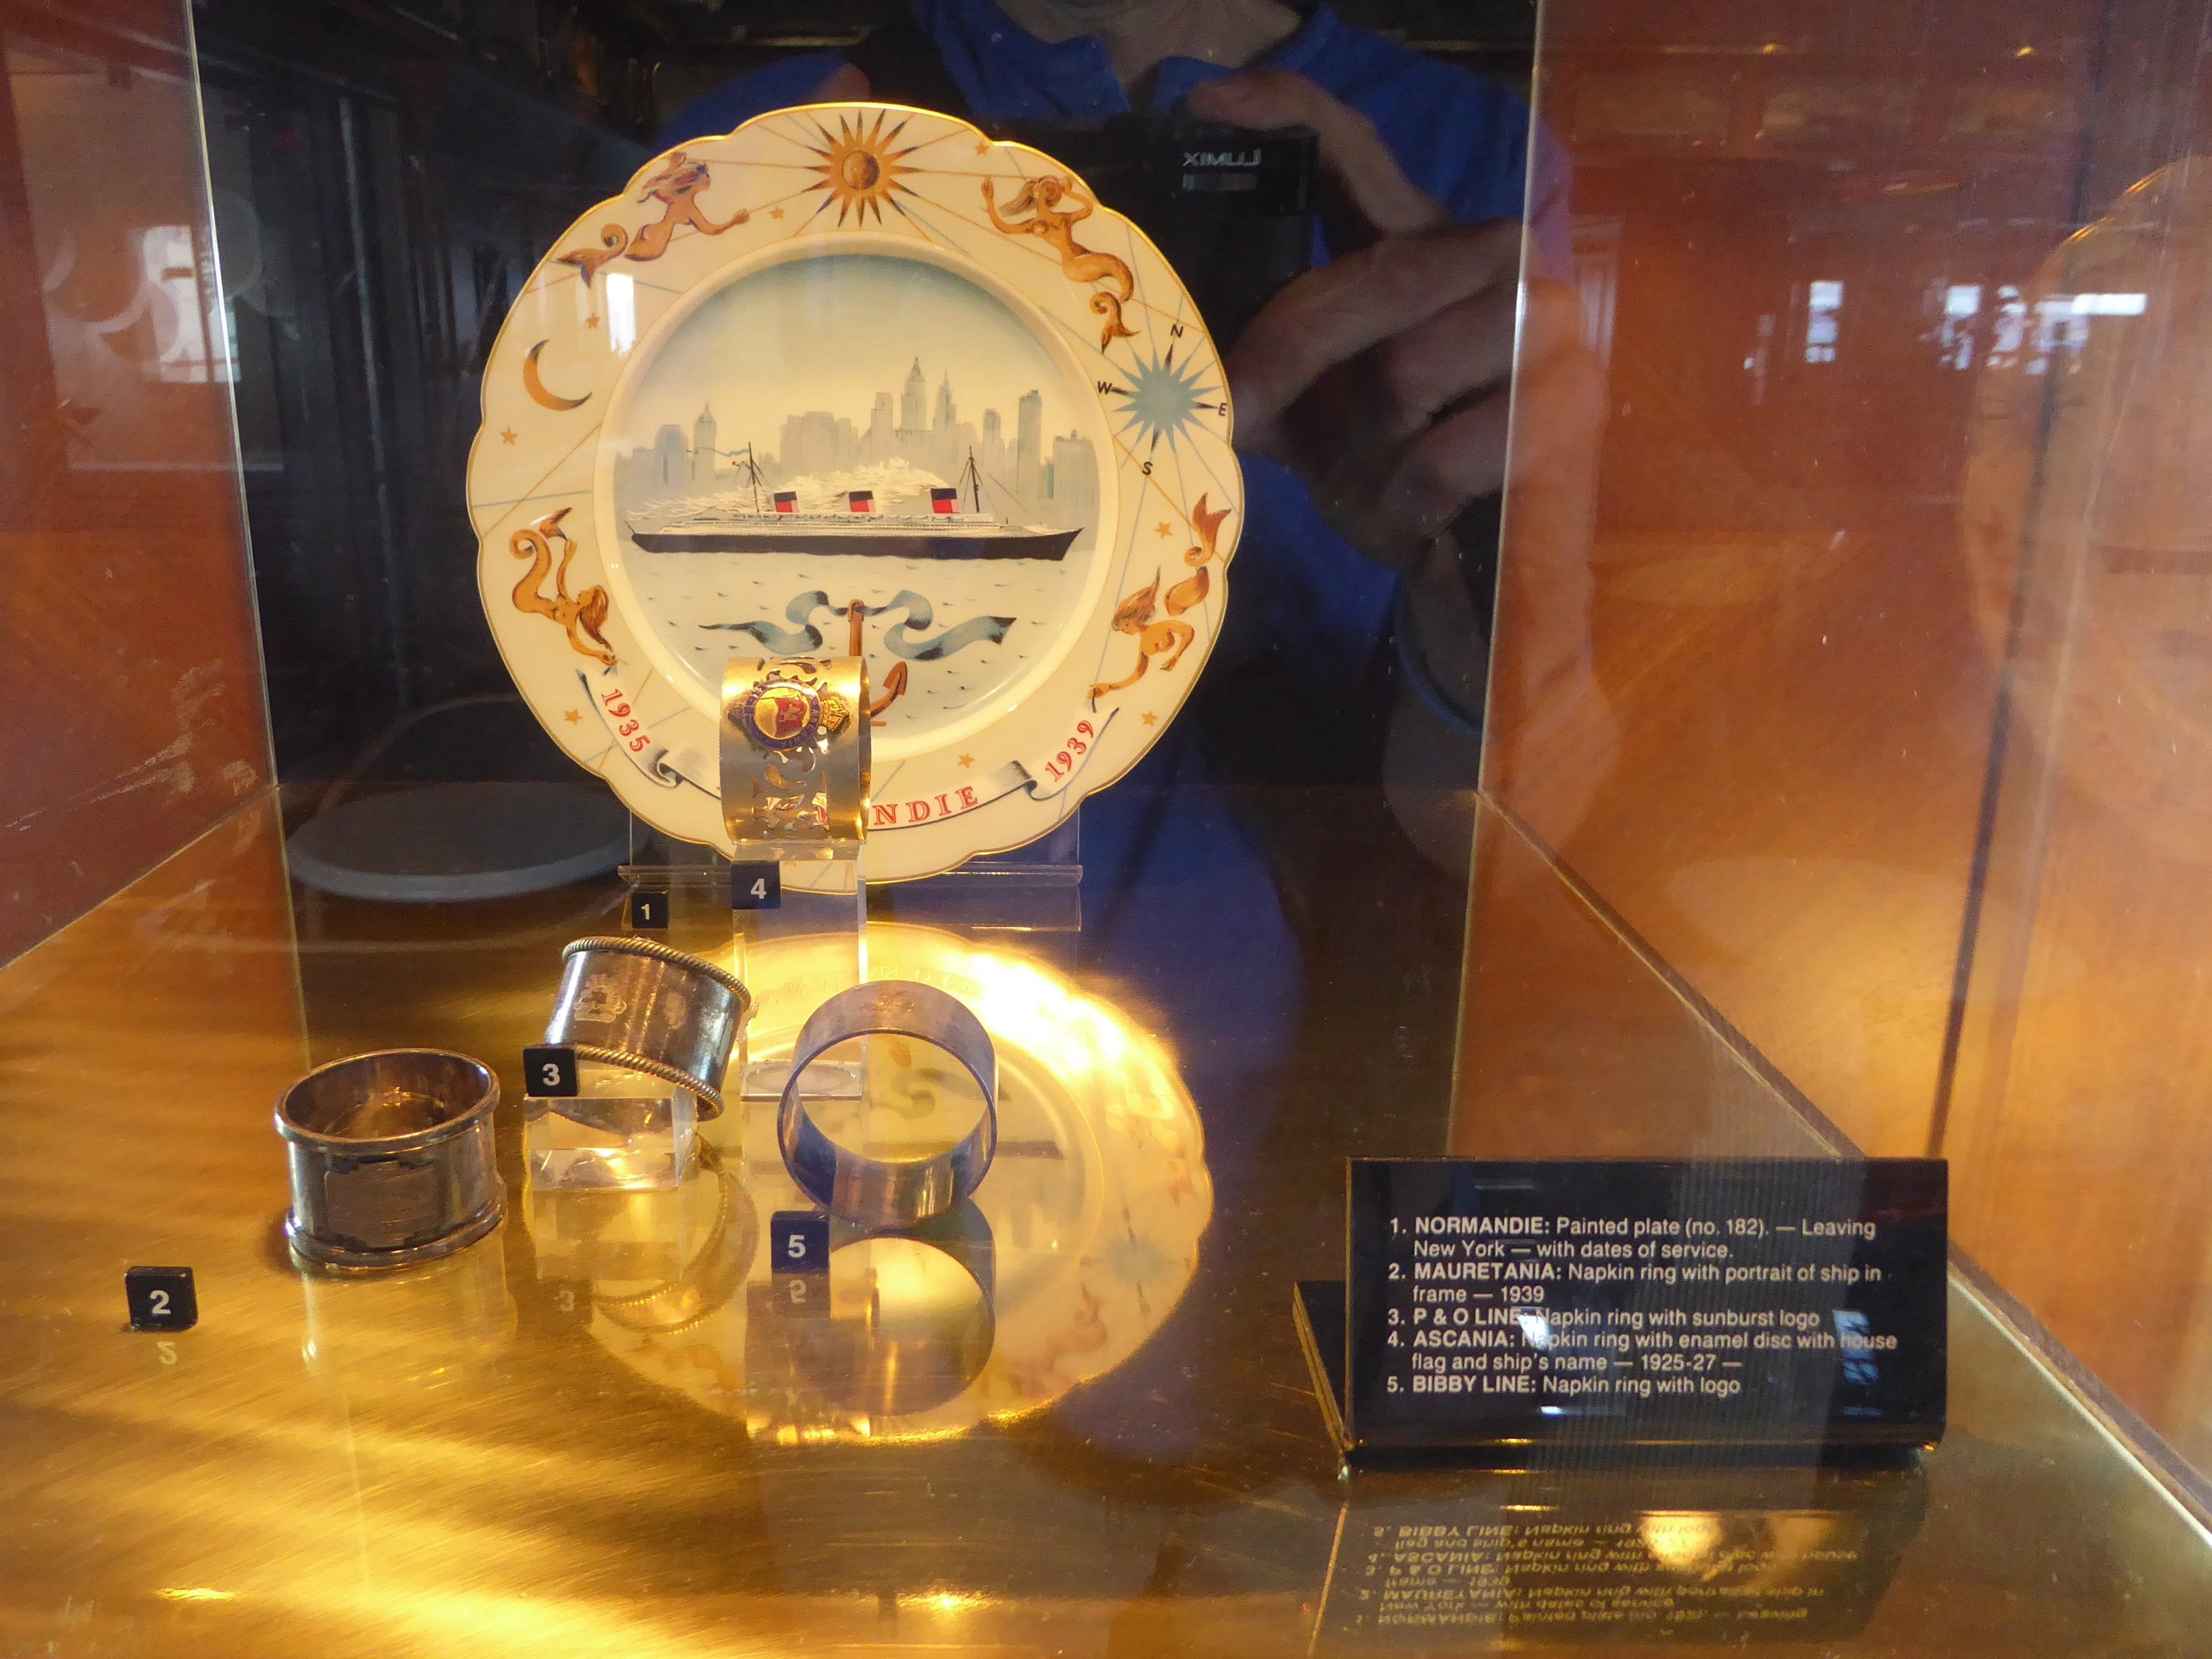 The Helm has vitrines filled with ocean liner artifacts, such as this commemorative plate from the Normandie and napkin rings from various British liners.